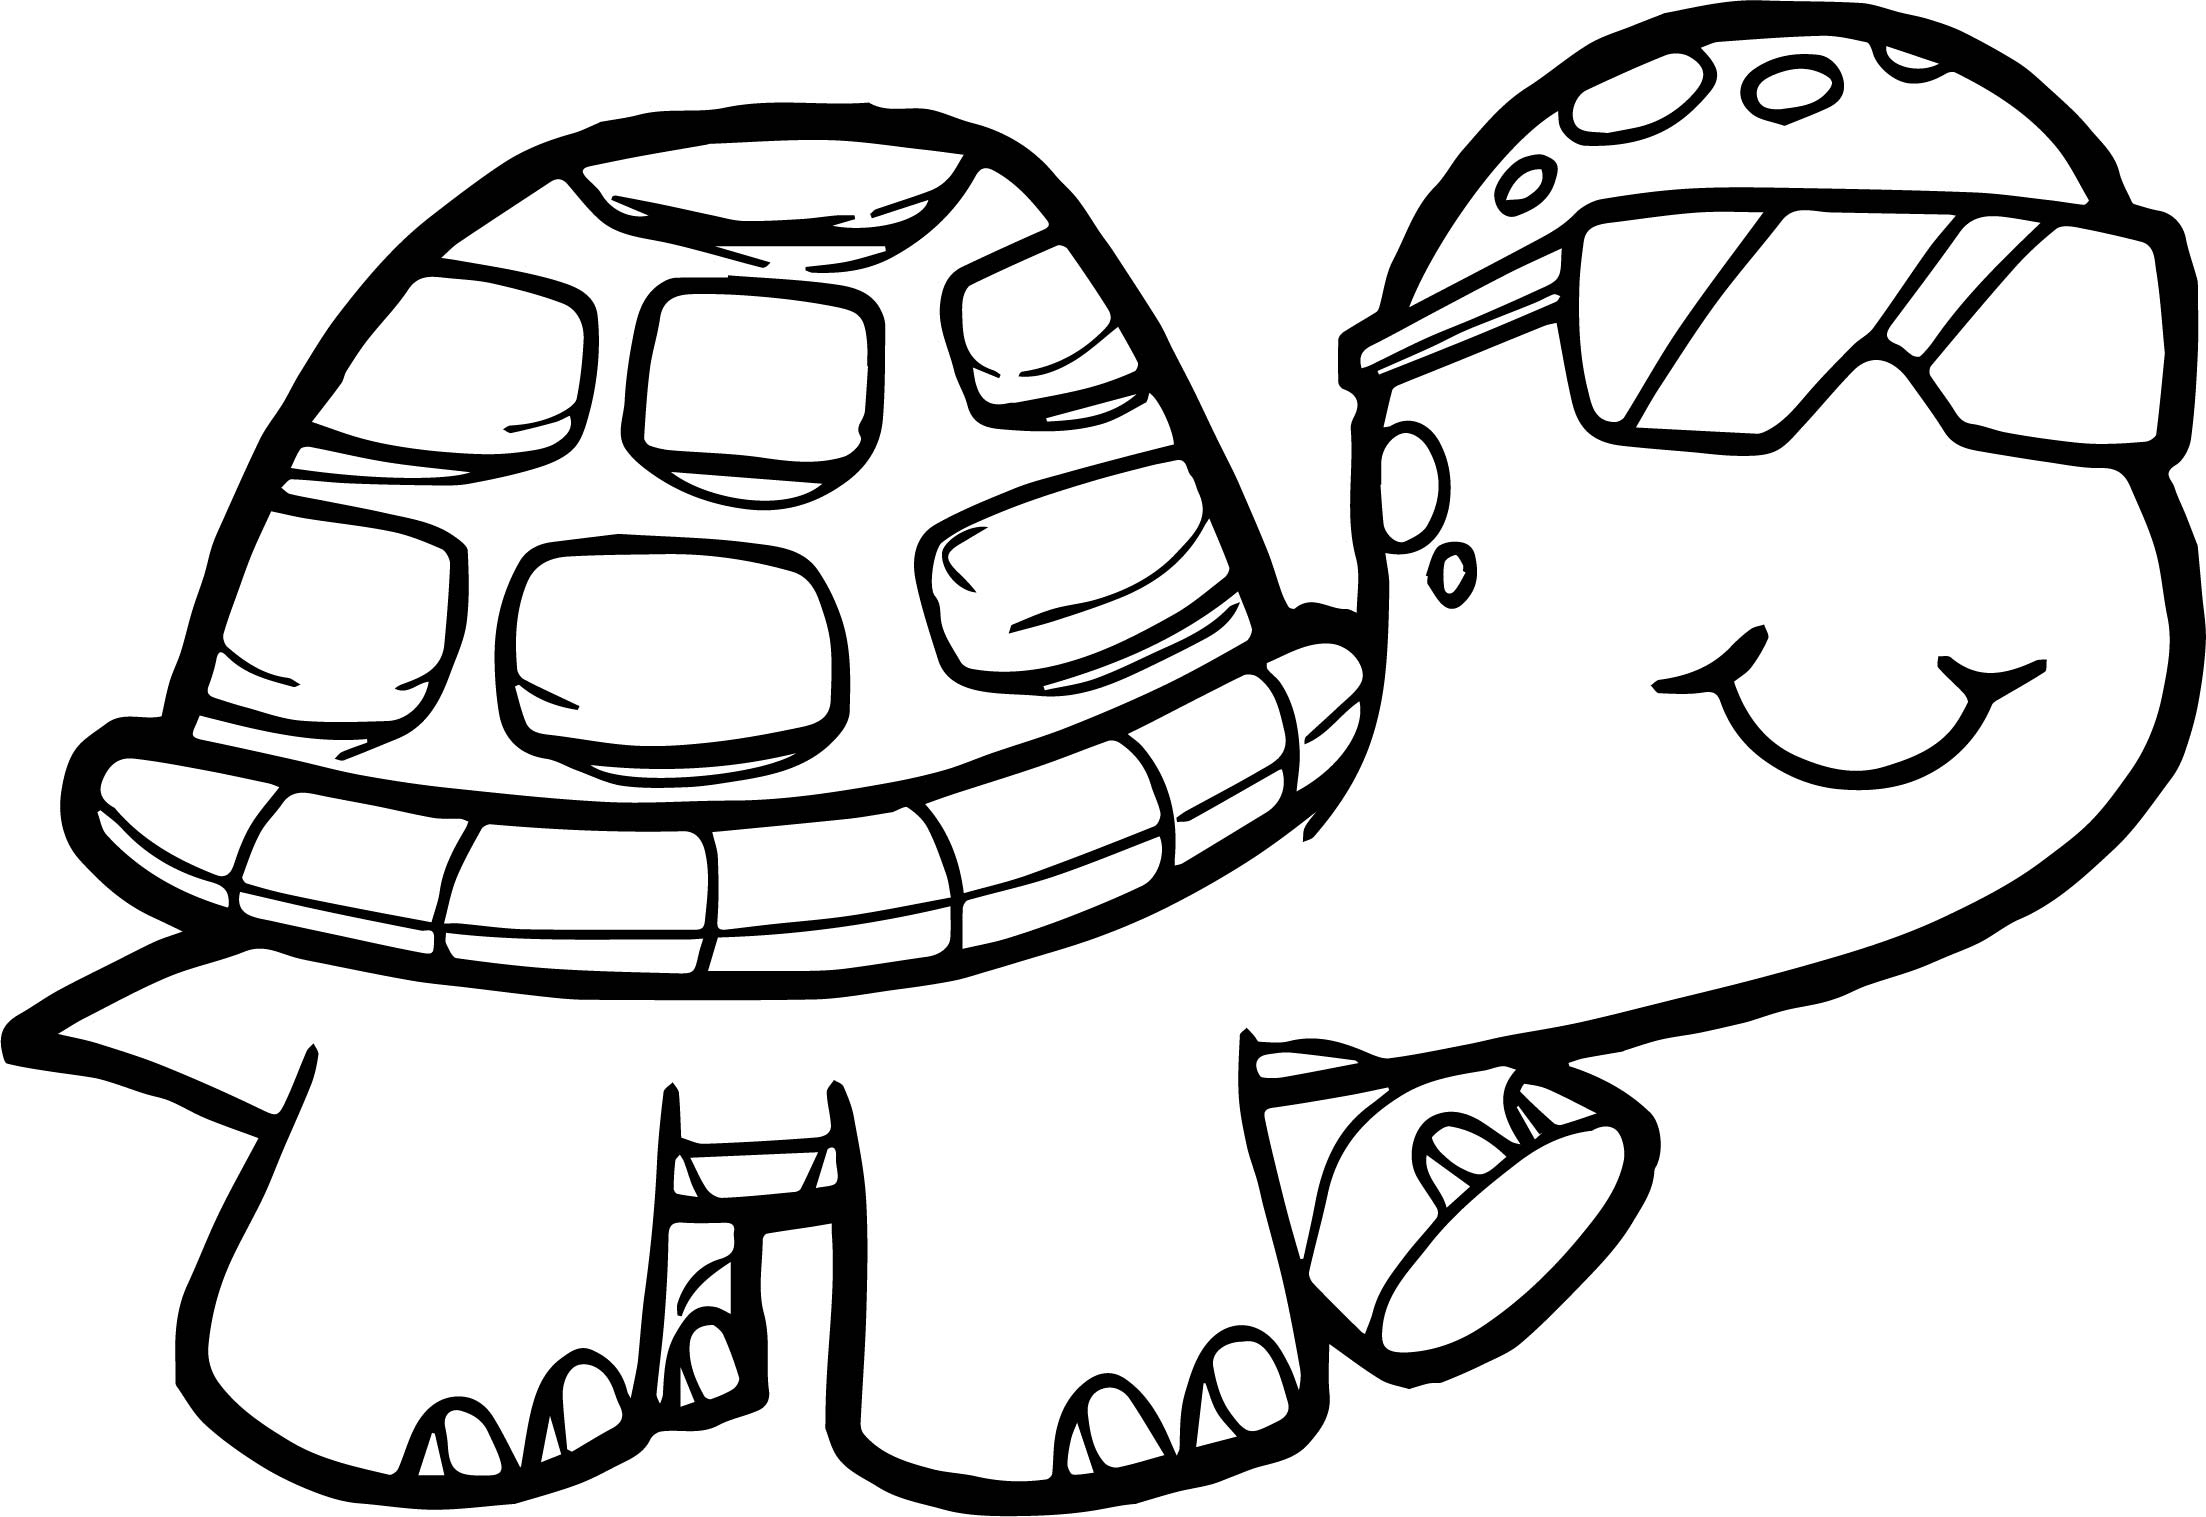 sea turtle coloring pages printable sea turtle drawing at getdrawings free download turtle coloring printable sea pages